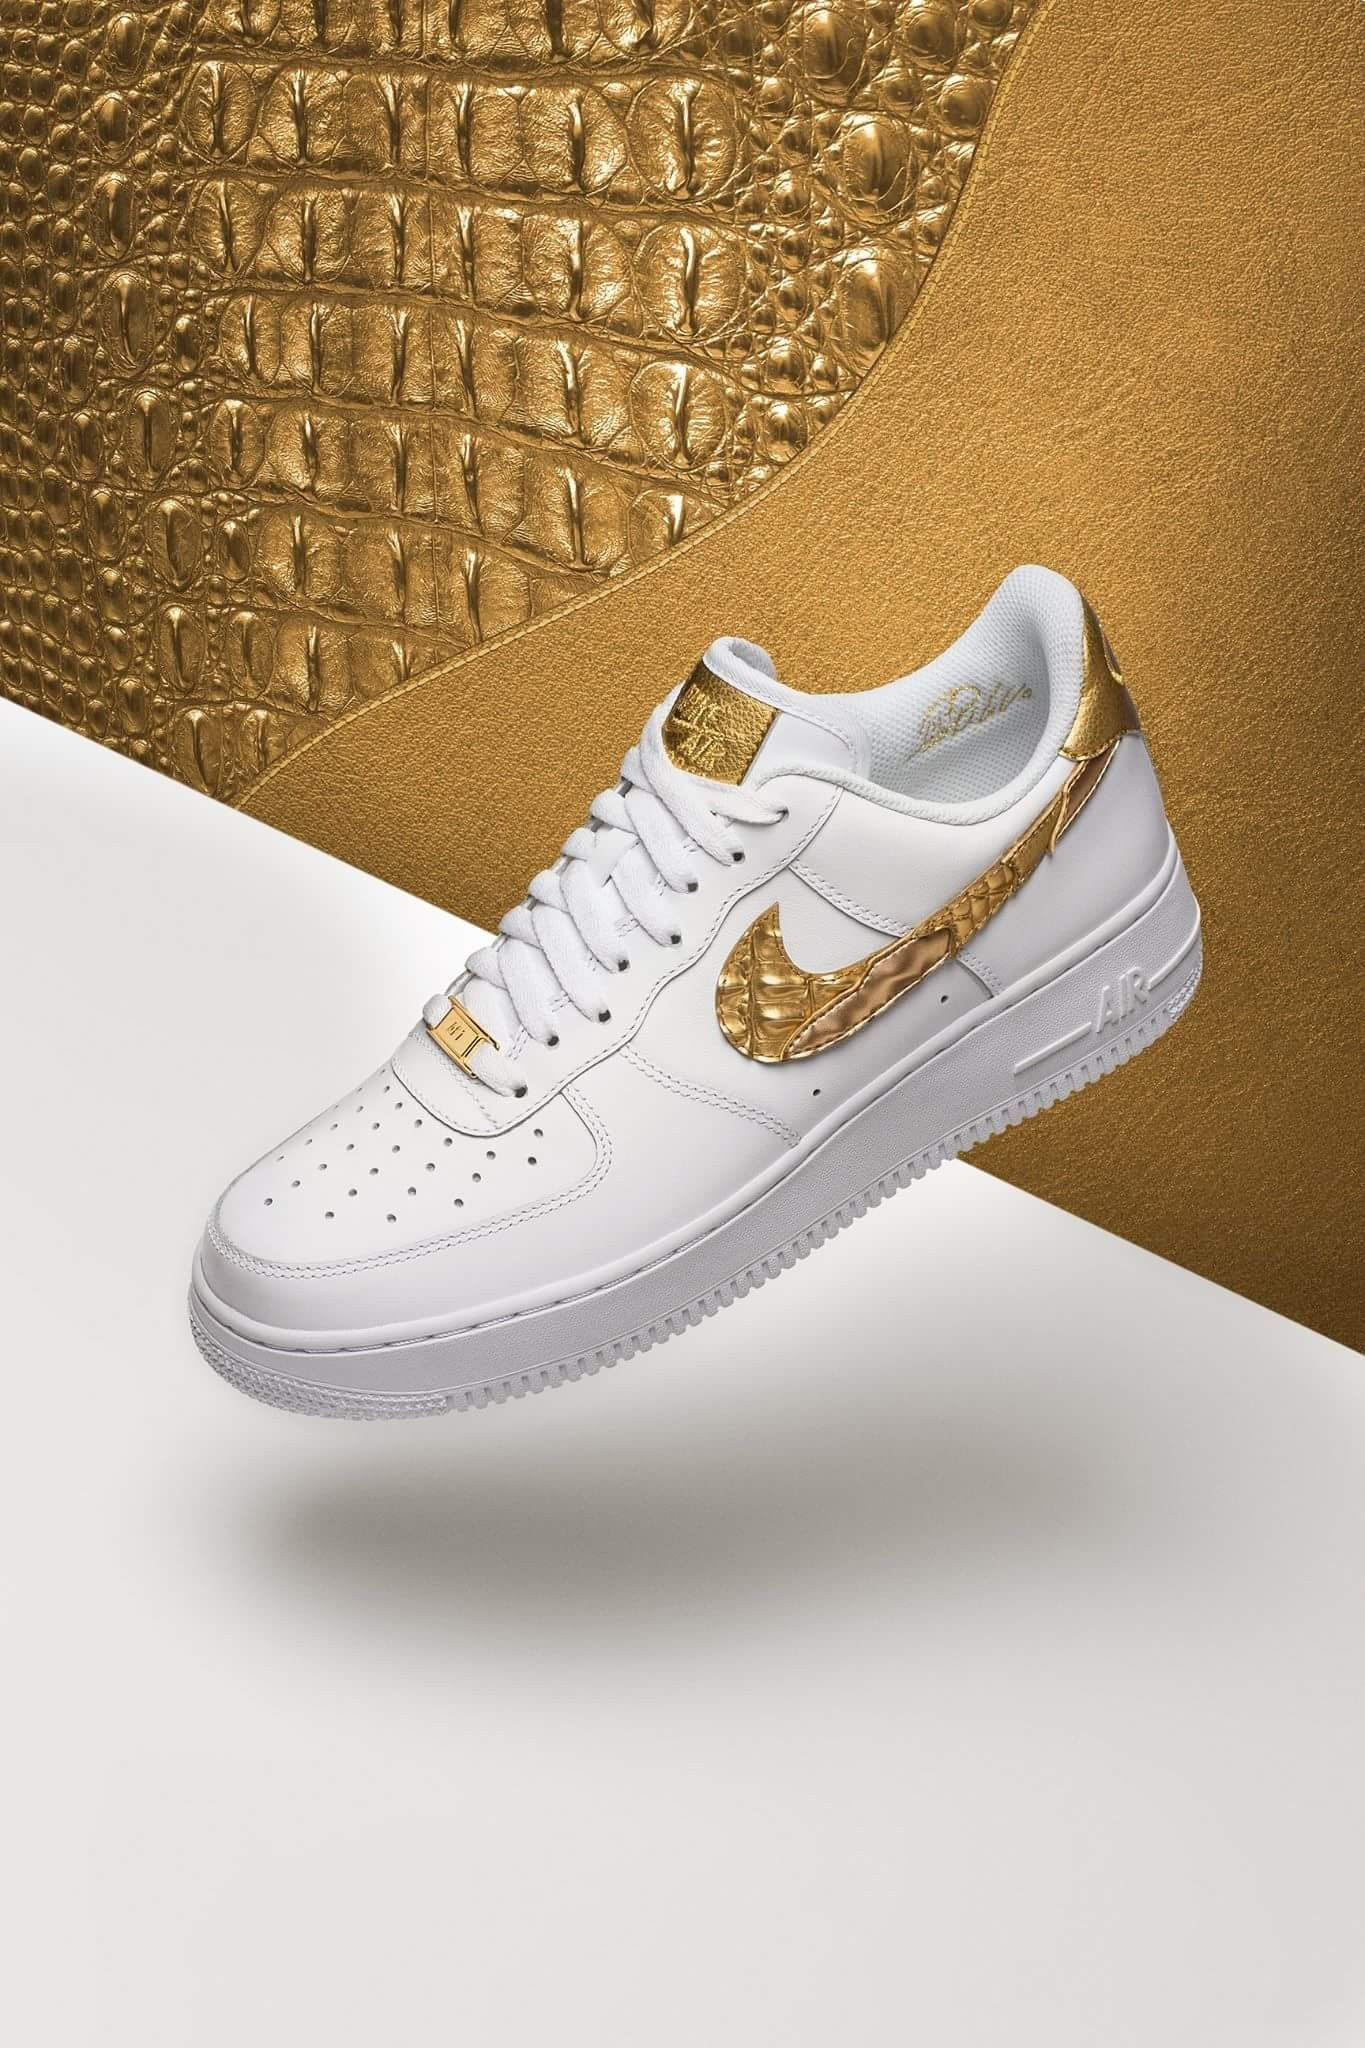 detailed look da609 0af35 My AF1 CR7 s launch today on the Nike SNEAKRS app!  AF1  CR7 Go to Nike .com SNEAKRS